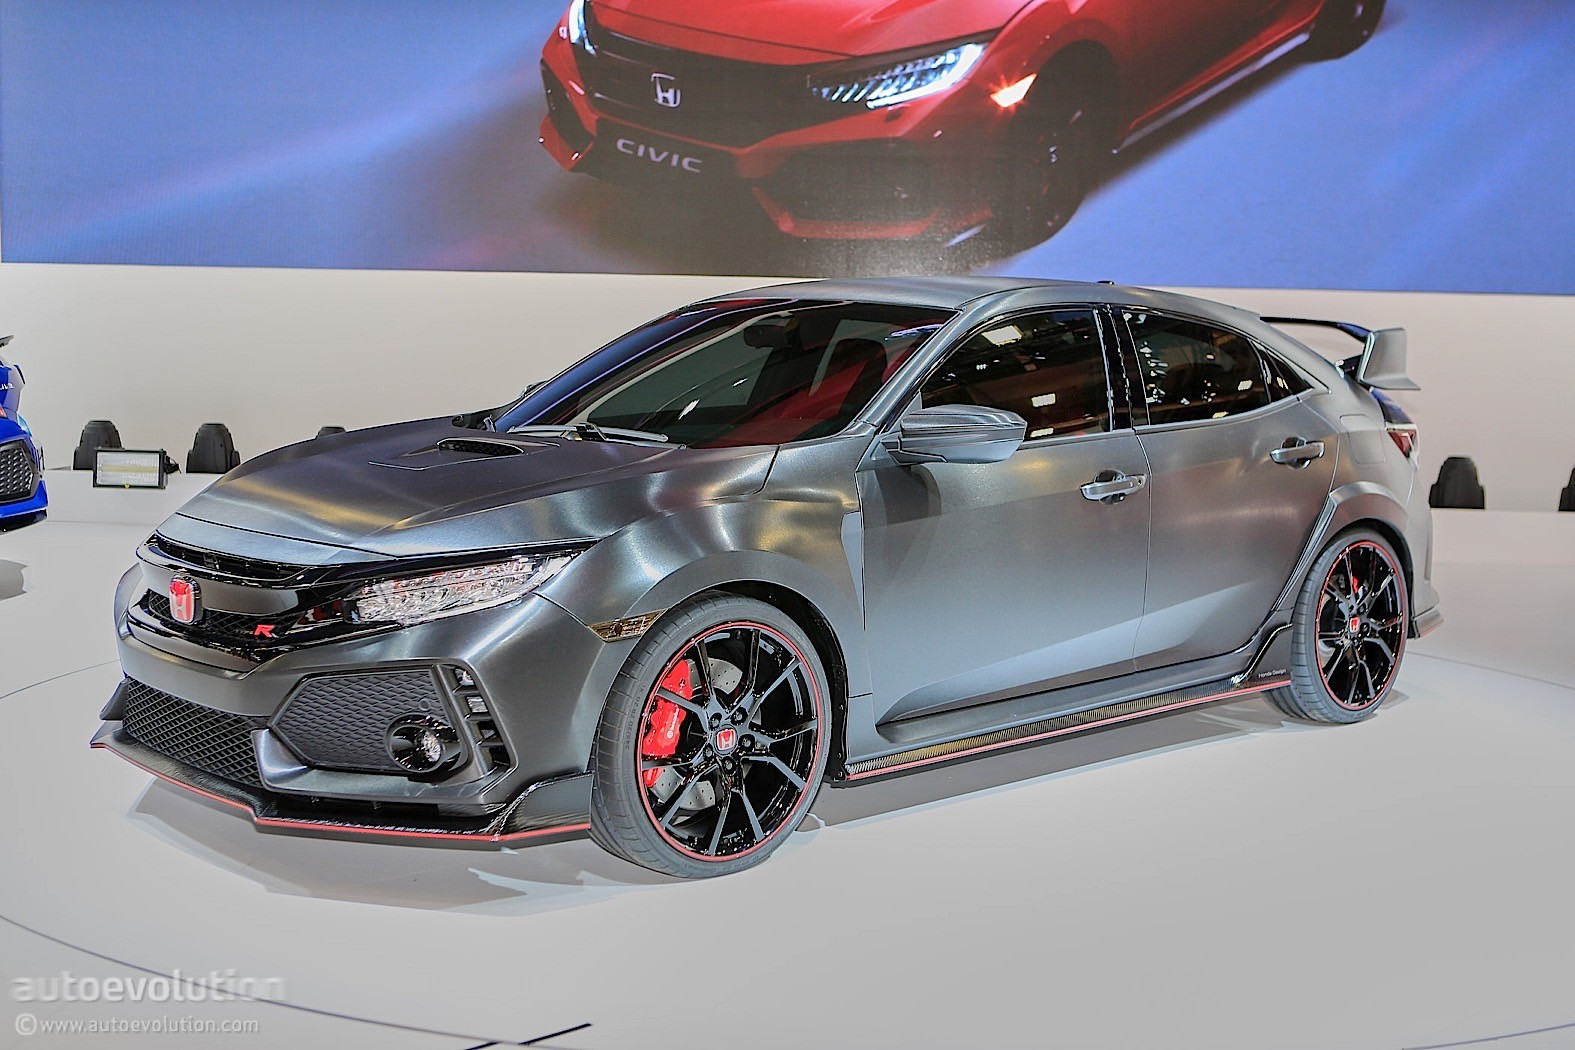 2017 honda civic type r black edition limited to 100 for All black honda civic